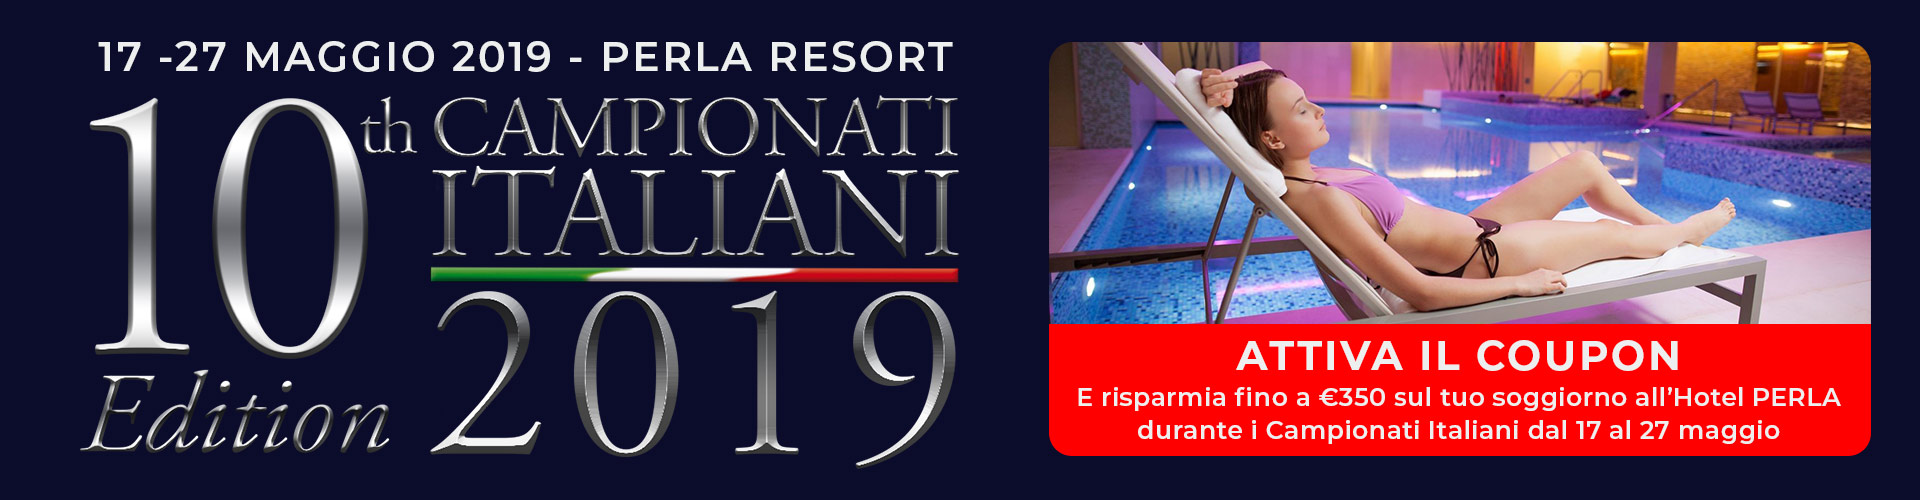 banner-campionati-italiani-poker-10-edition-promo-perla-resort